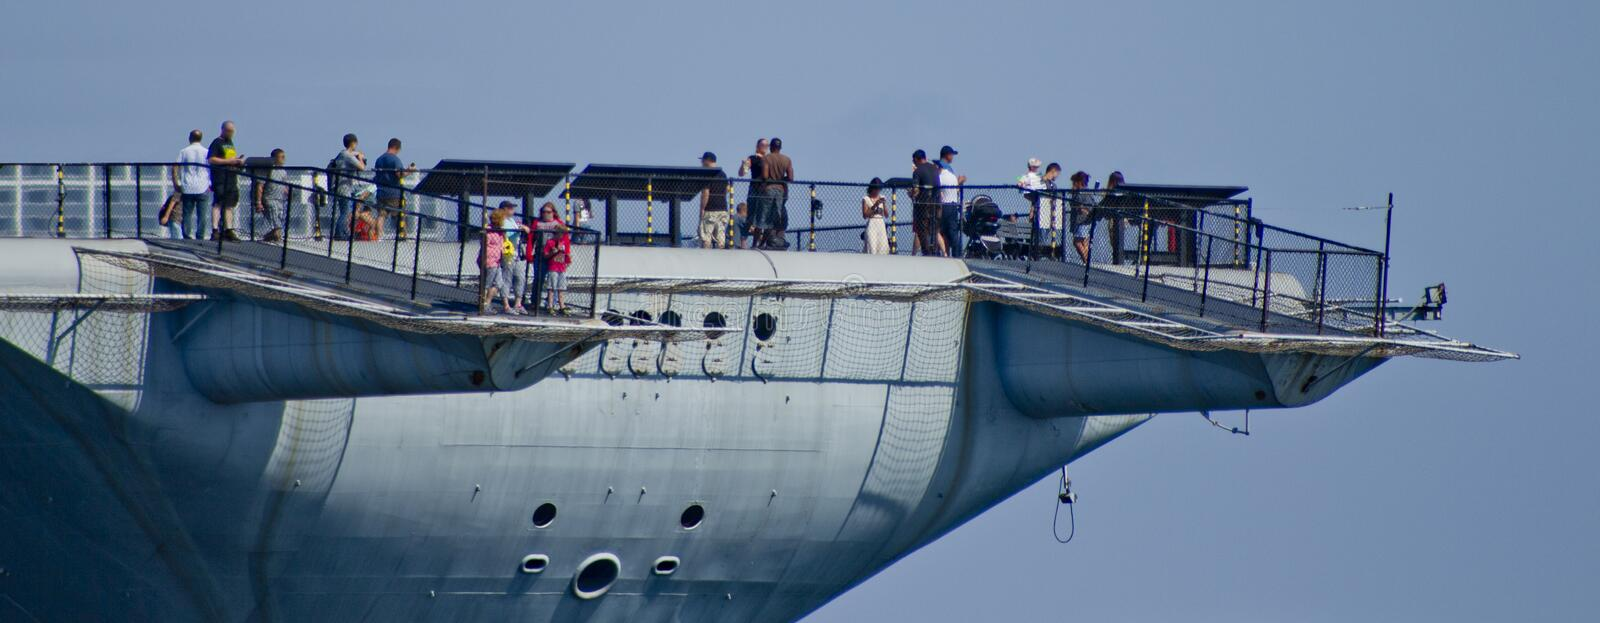 SAN DIEGO, CA - USS Midway tail view royalty free stock image